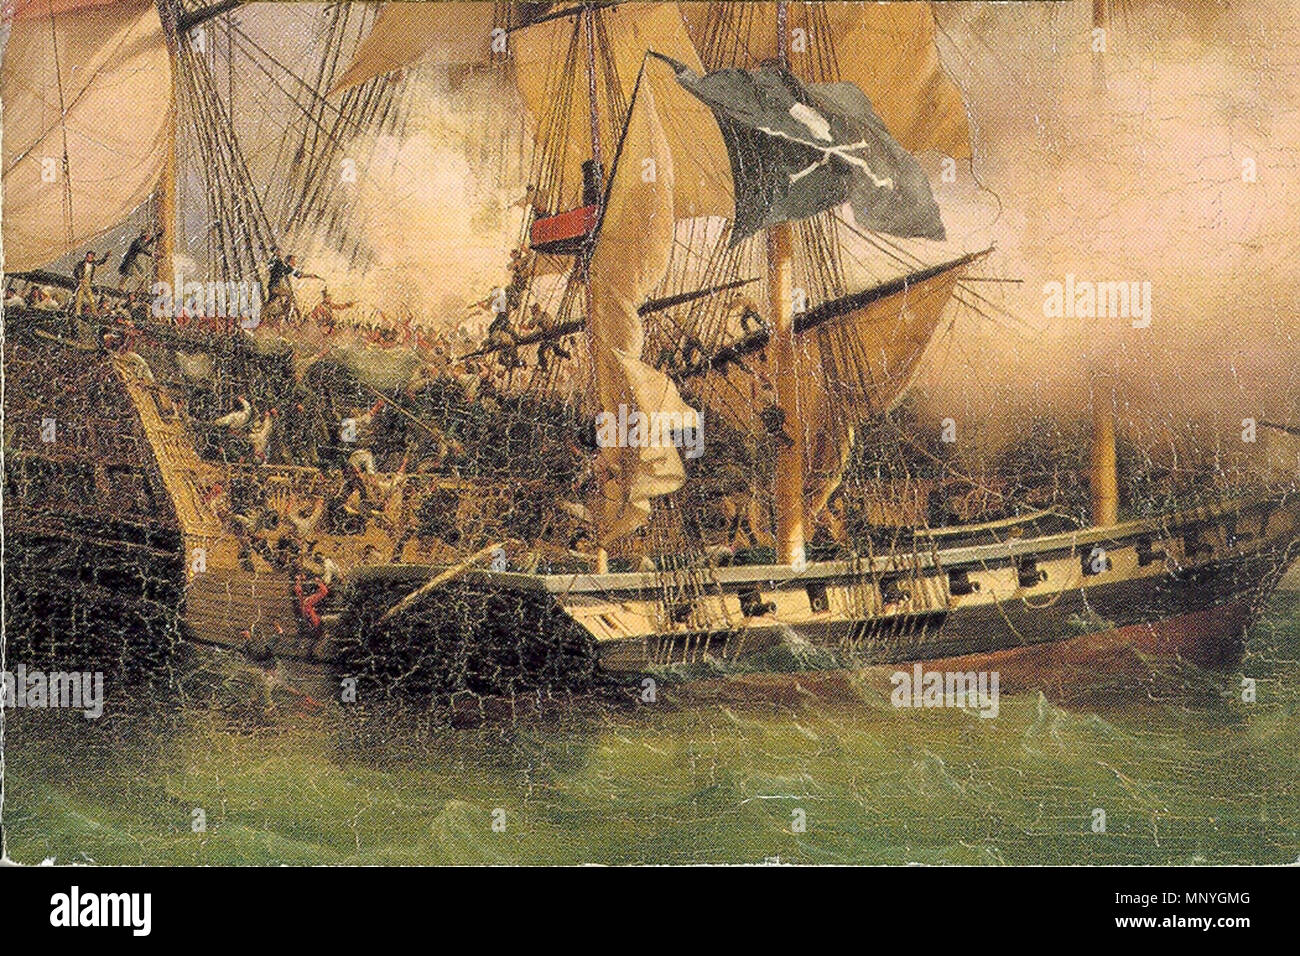 English: A painting showing a pirate ship attacking a merchants's